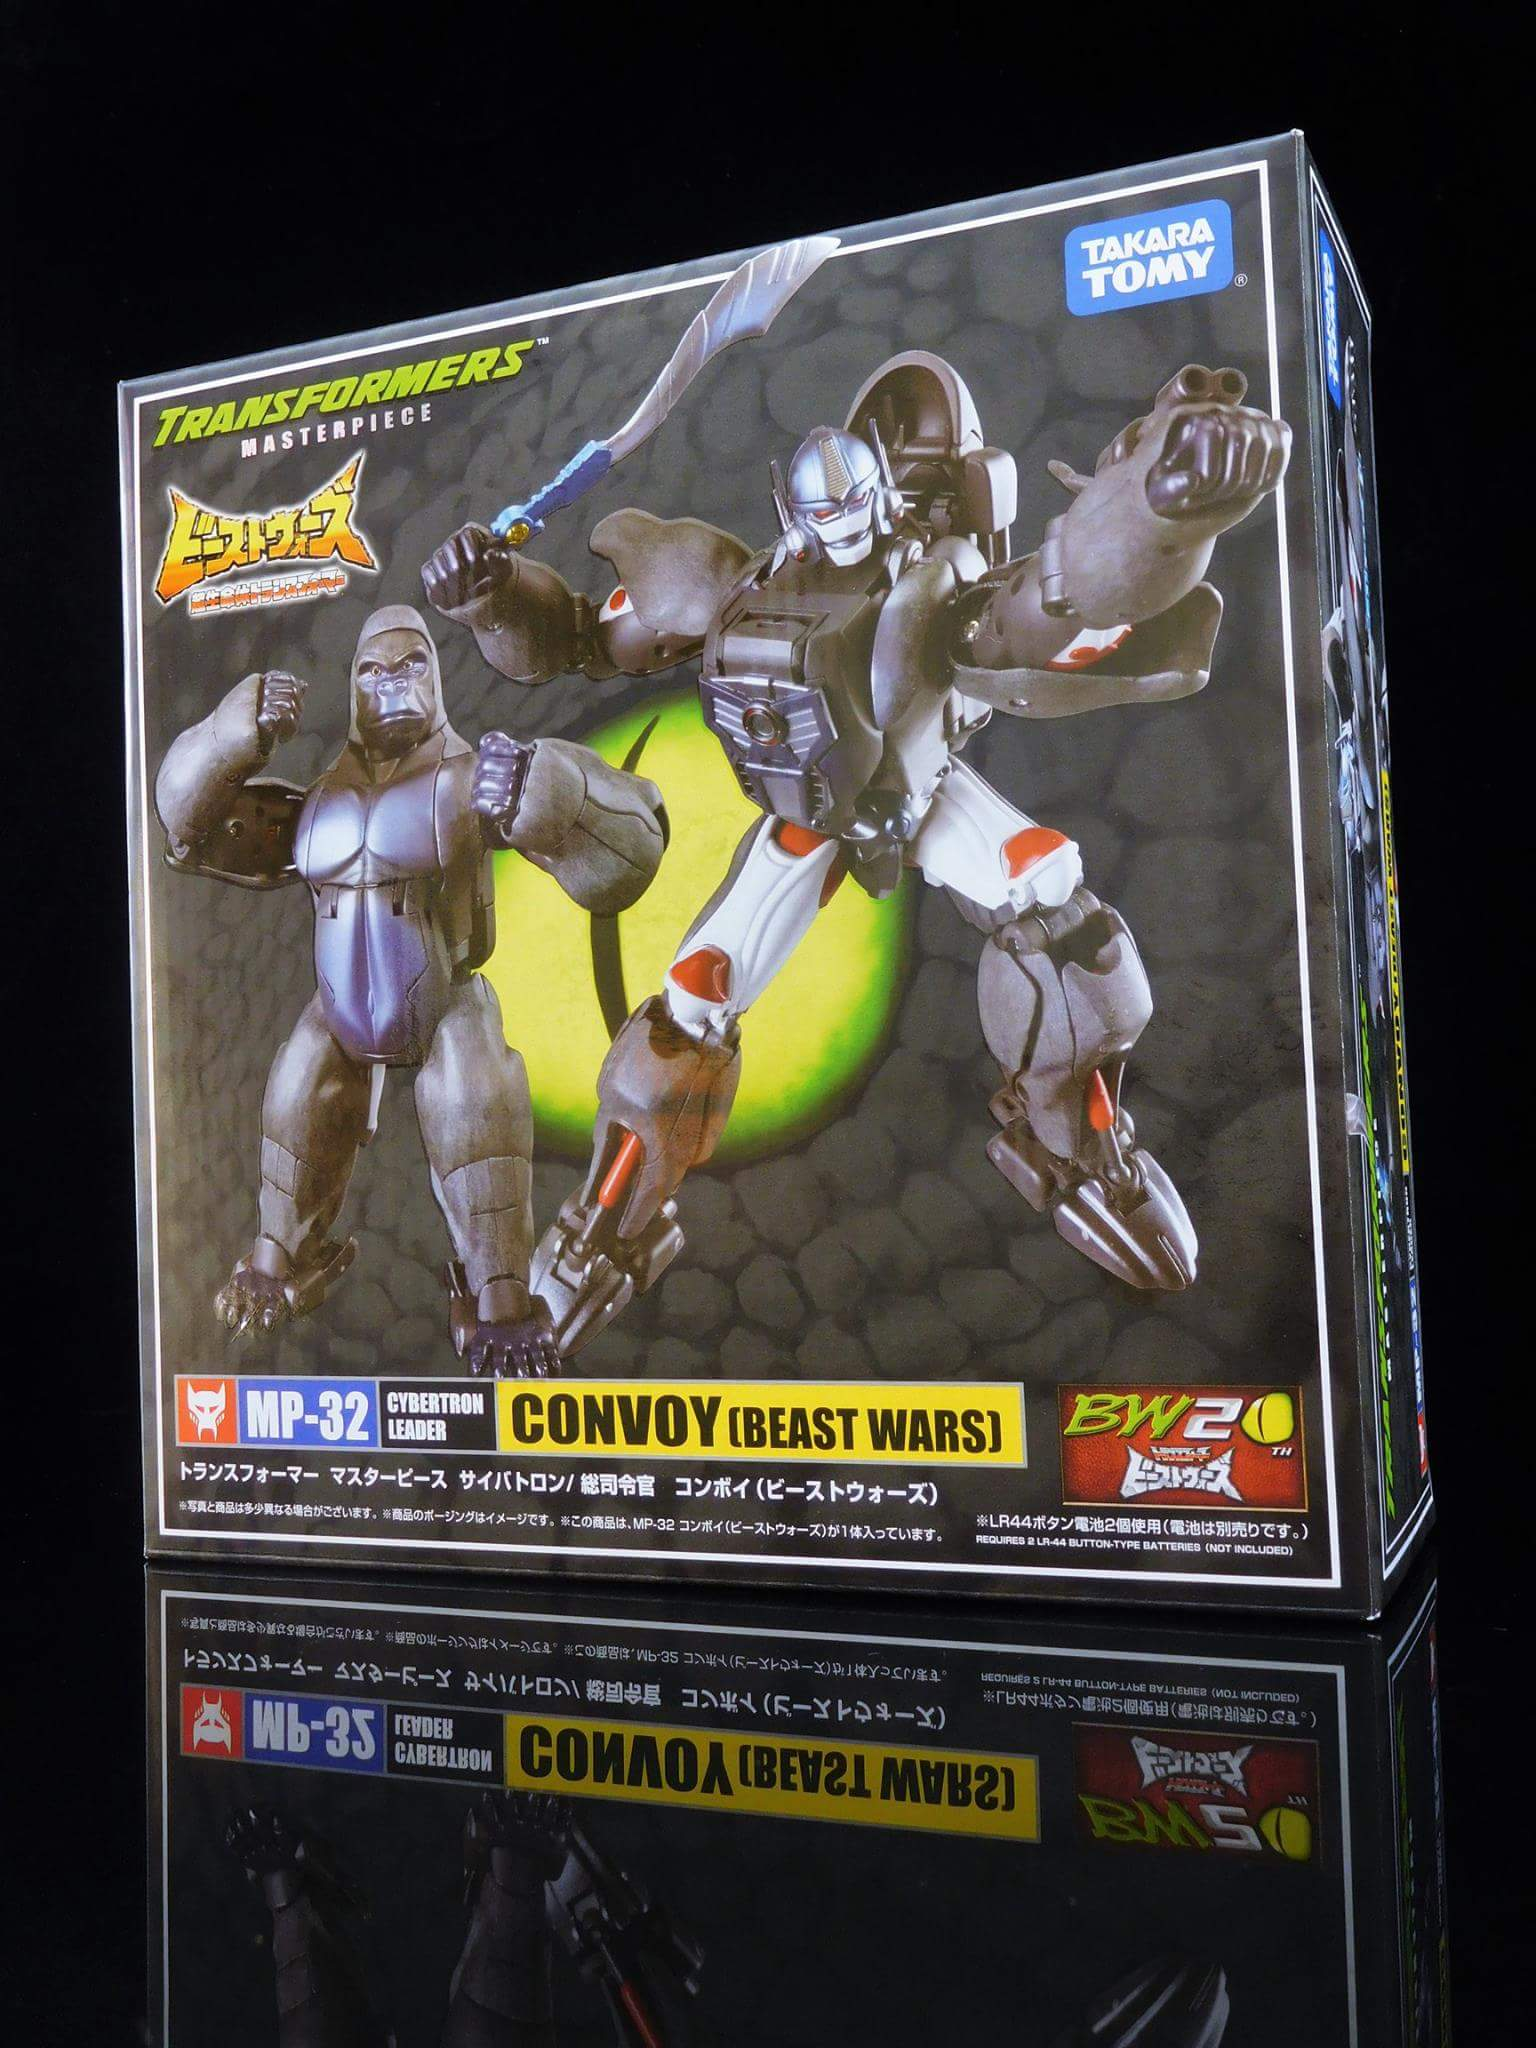 [Masterpiece] MP-32, MP-38 Optimus Primal et MP-38+ Burning Convoy (Beast Wars) - Page 3 PDnAzNfp